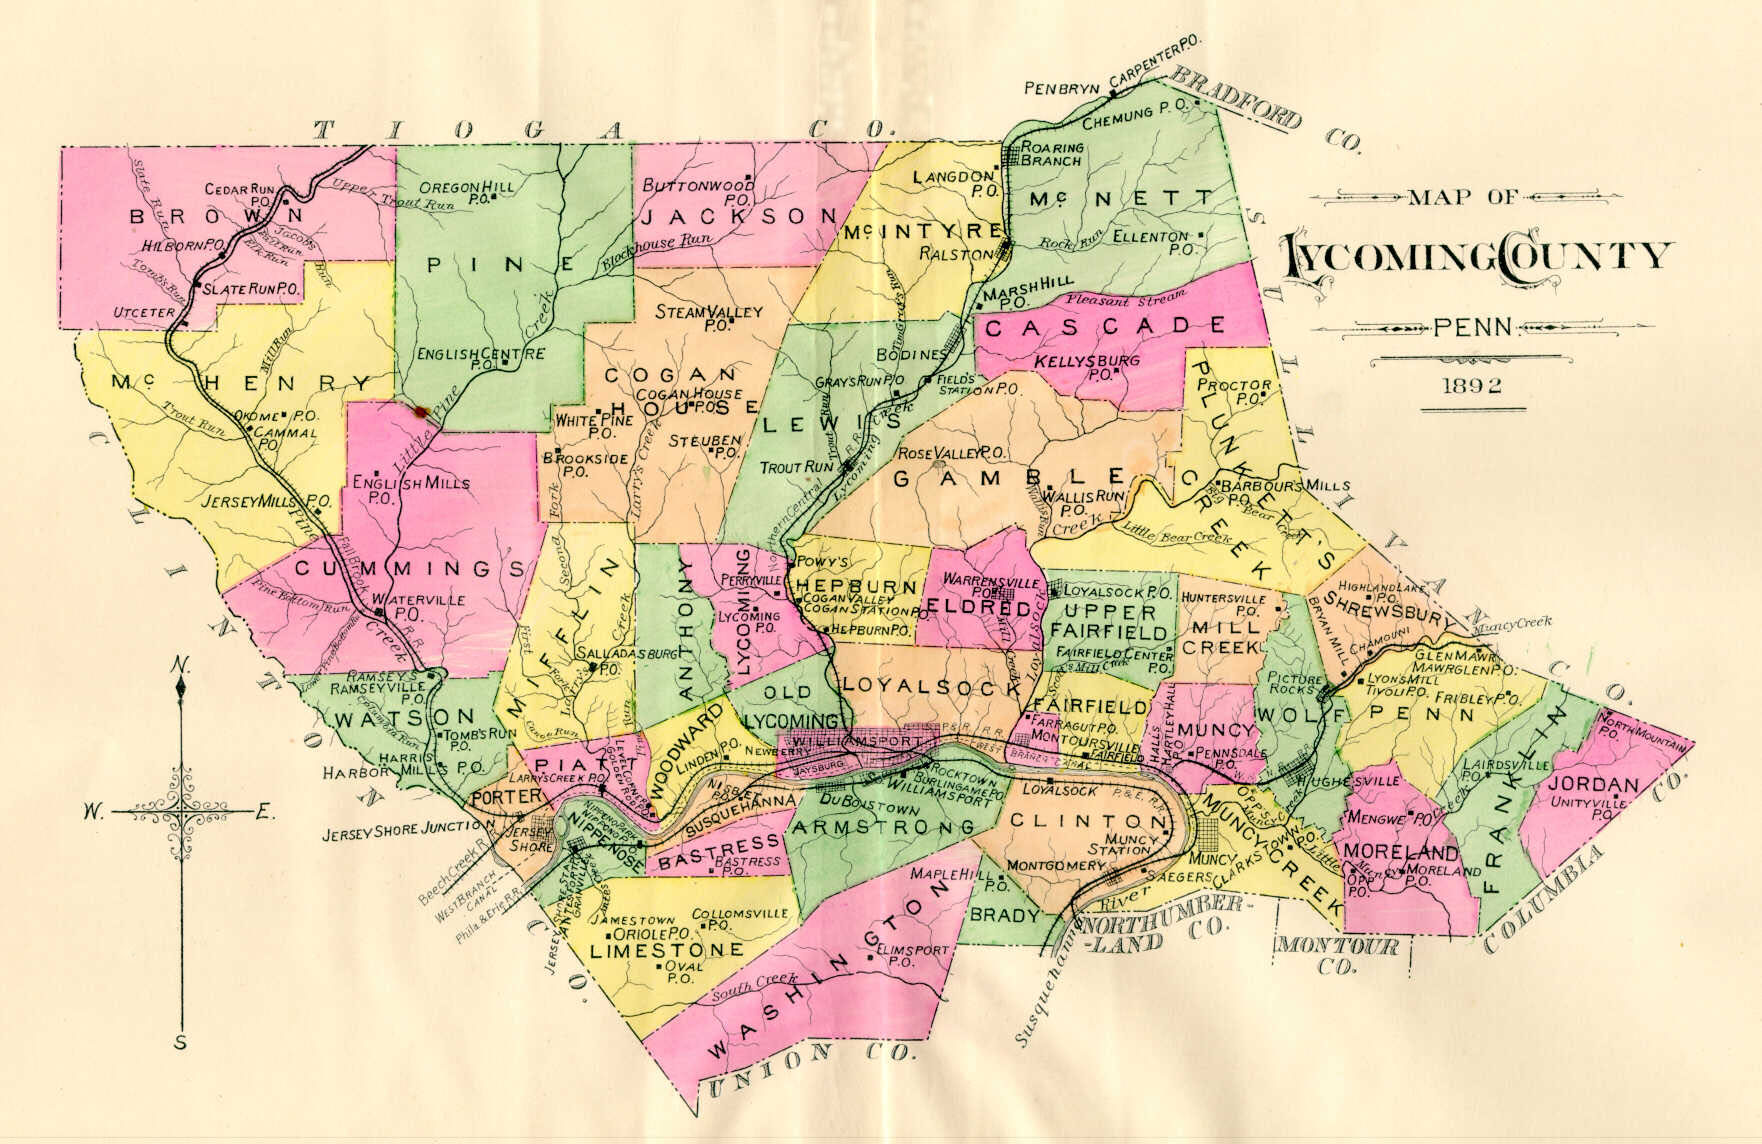 Lycoming Co. 1873 Atlas on little pine state park pa map, salladasburg pa map, montour county pa map, golden eagle trail pa map, cumberland county pa map, fairfield township pa map, pennsylvania county map, bucks co pa map, northumberland county pa map, red land pa map, sullivan county pa map, schuylkill river pa map, alleghany county pa map, hillsgrove pa map, knox county pa map, porter township pa map, chester co pa map, gray pa map, kinzua dam pa map, elk county pa map,